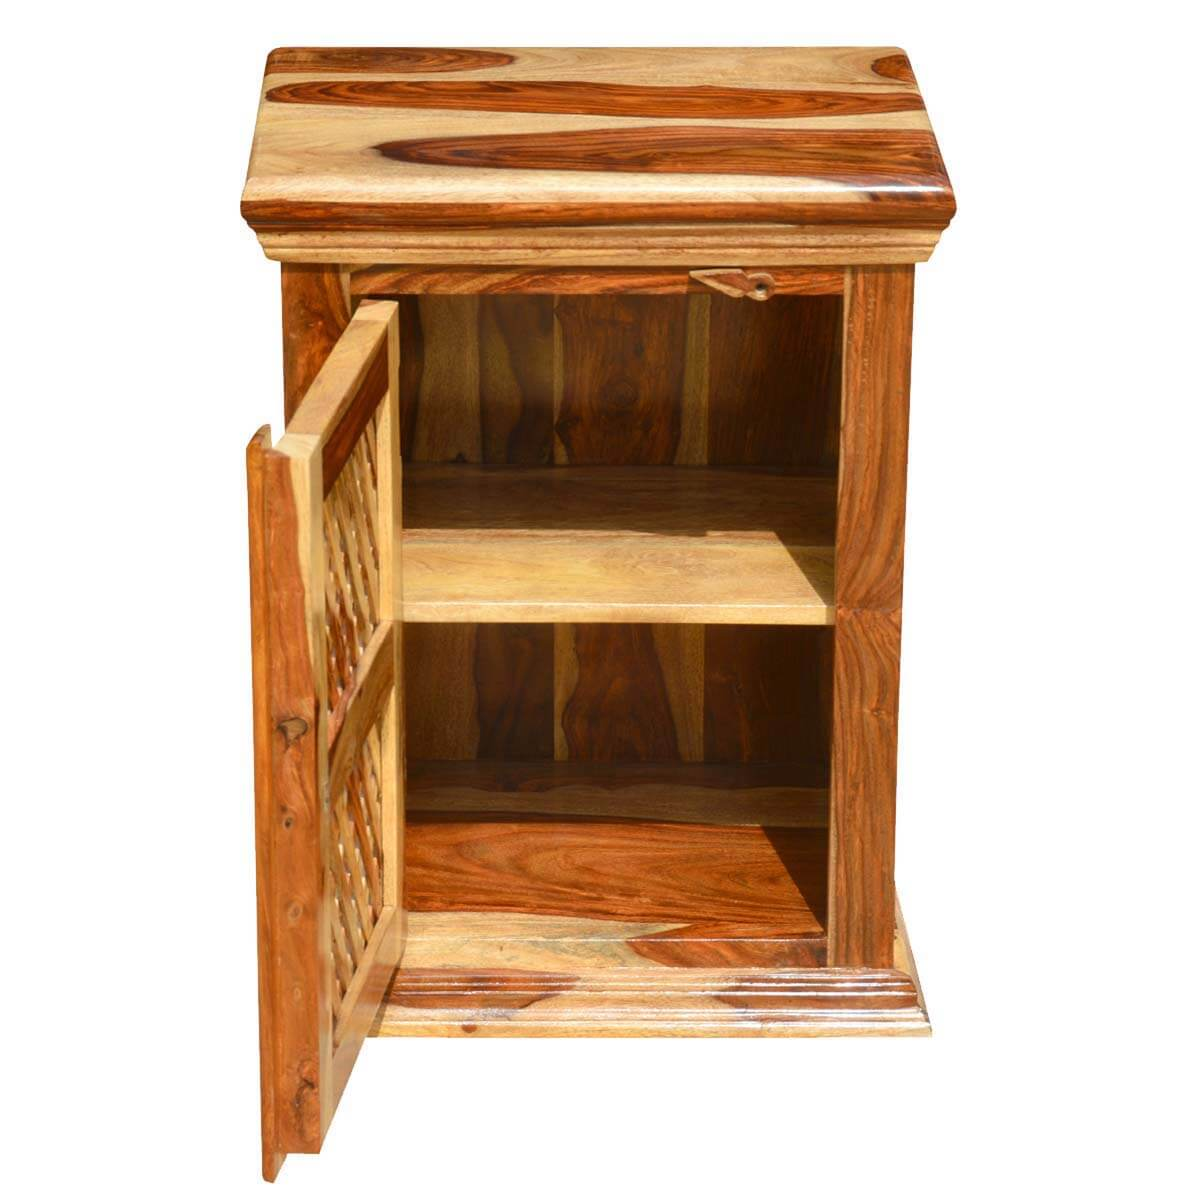 Kitchen Side Table: Wood Night Stand Bed Side Table Kitchen Storage Cabinet